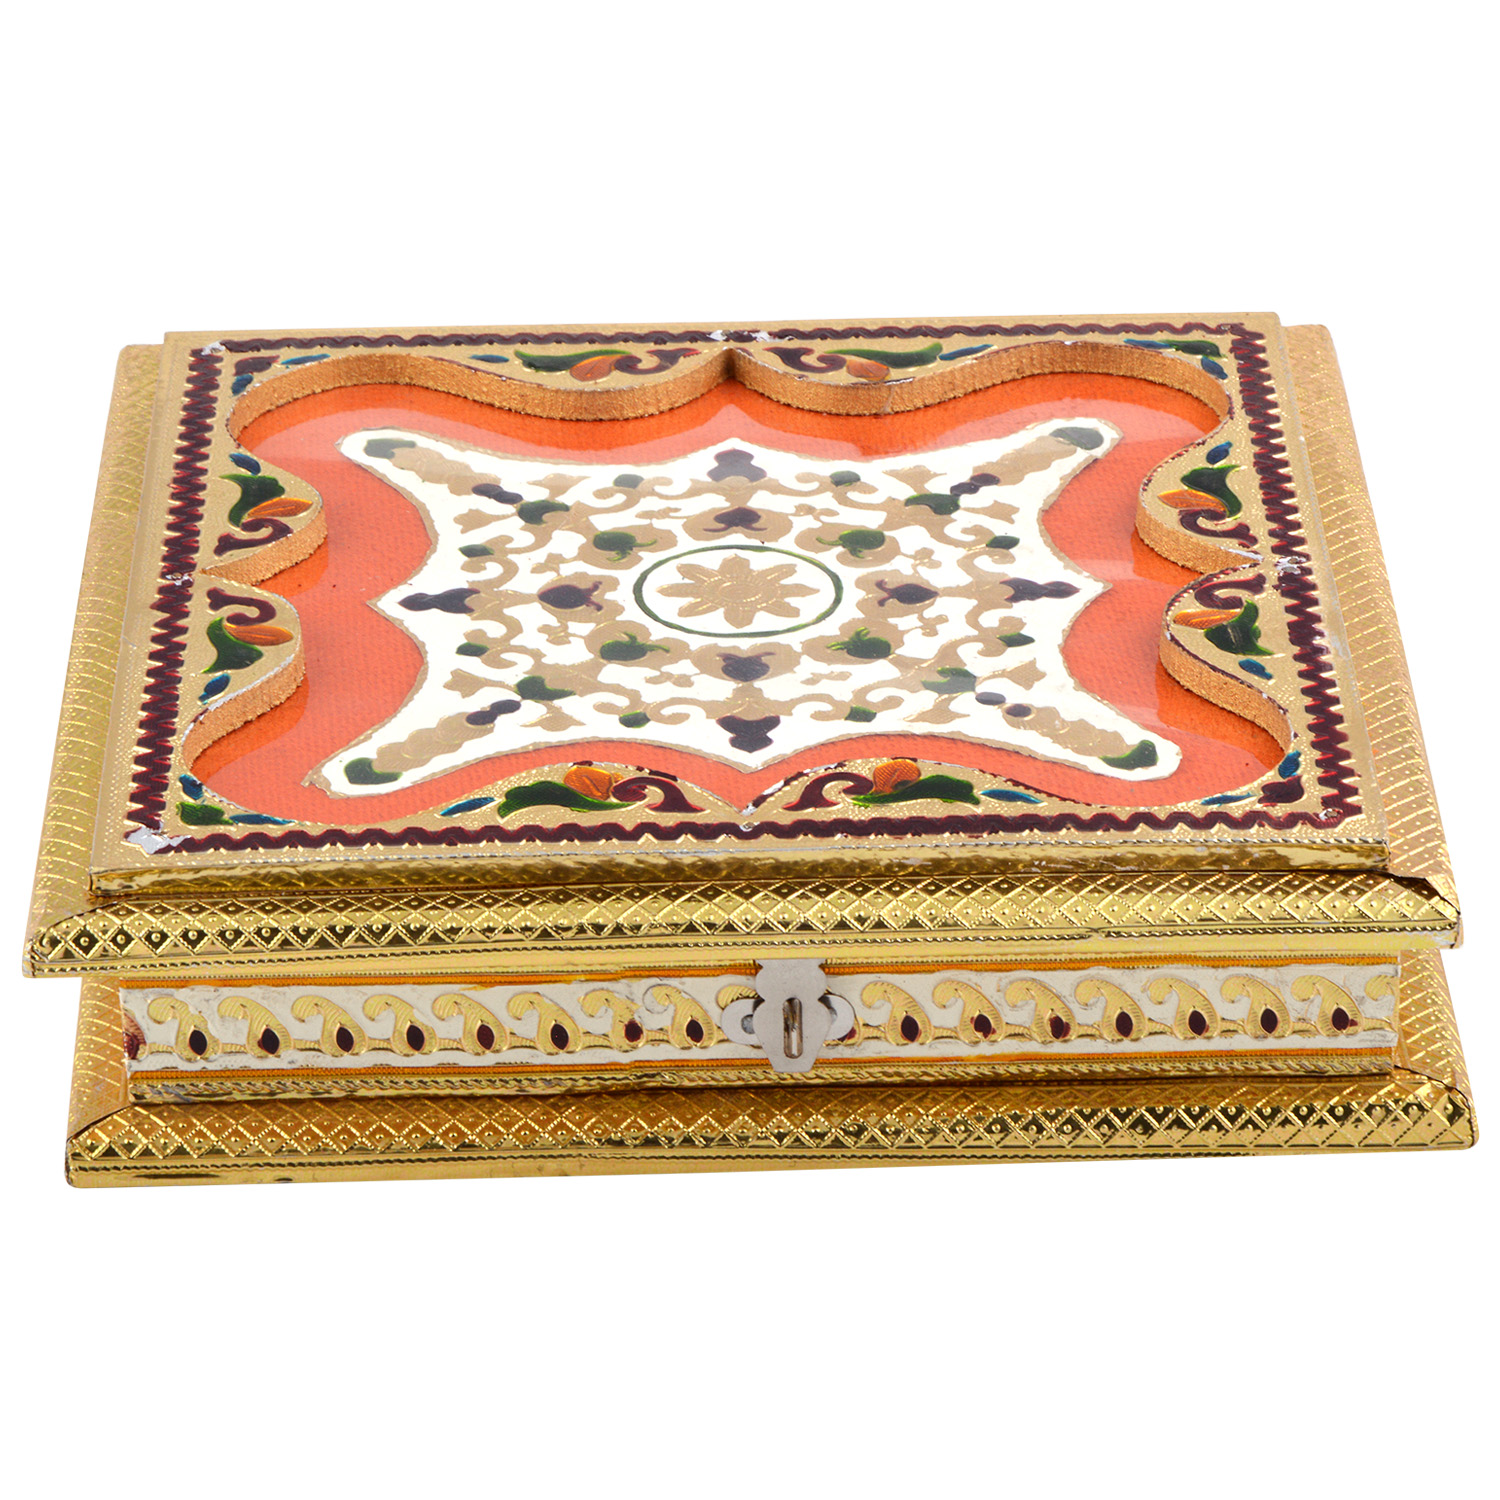 JK Handicraft 10x10 Golden White Meena Dry Fruit/ Multipurpose Box  (25cmX25cmX6cm)